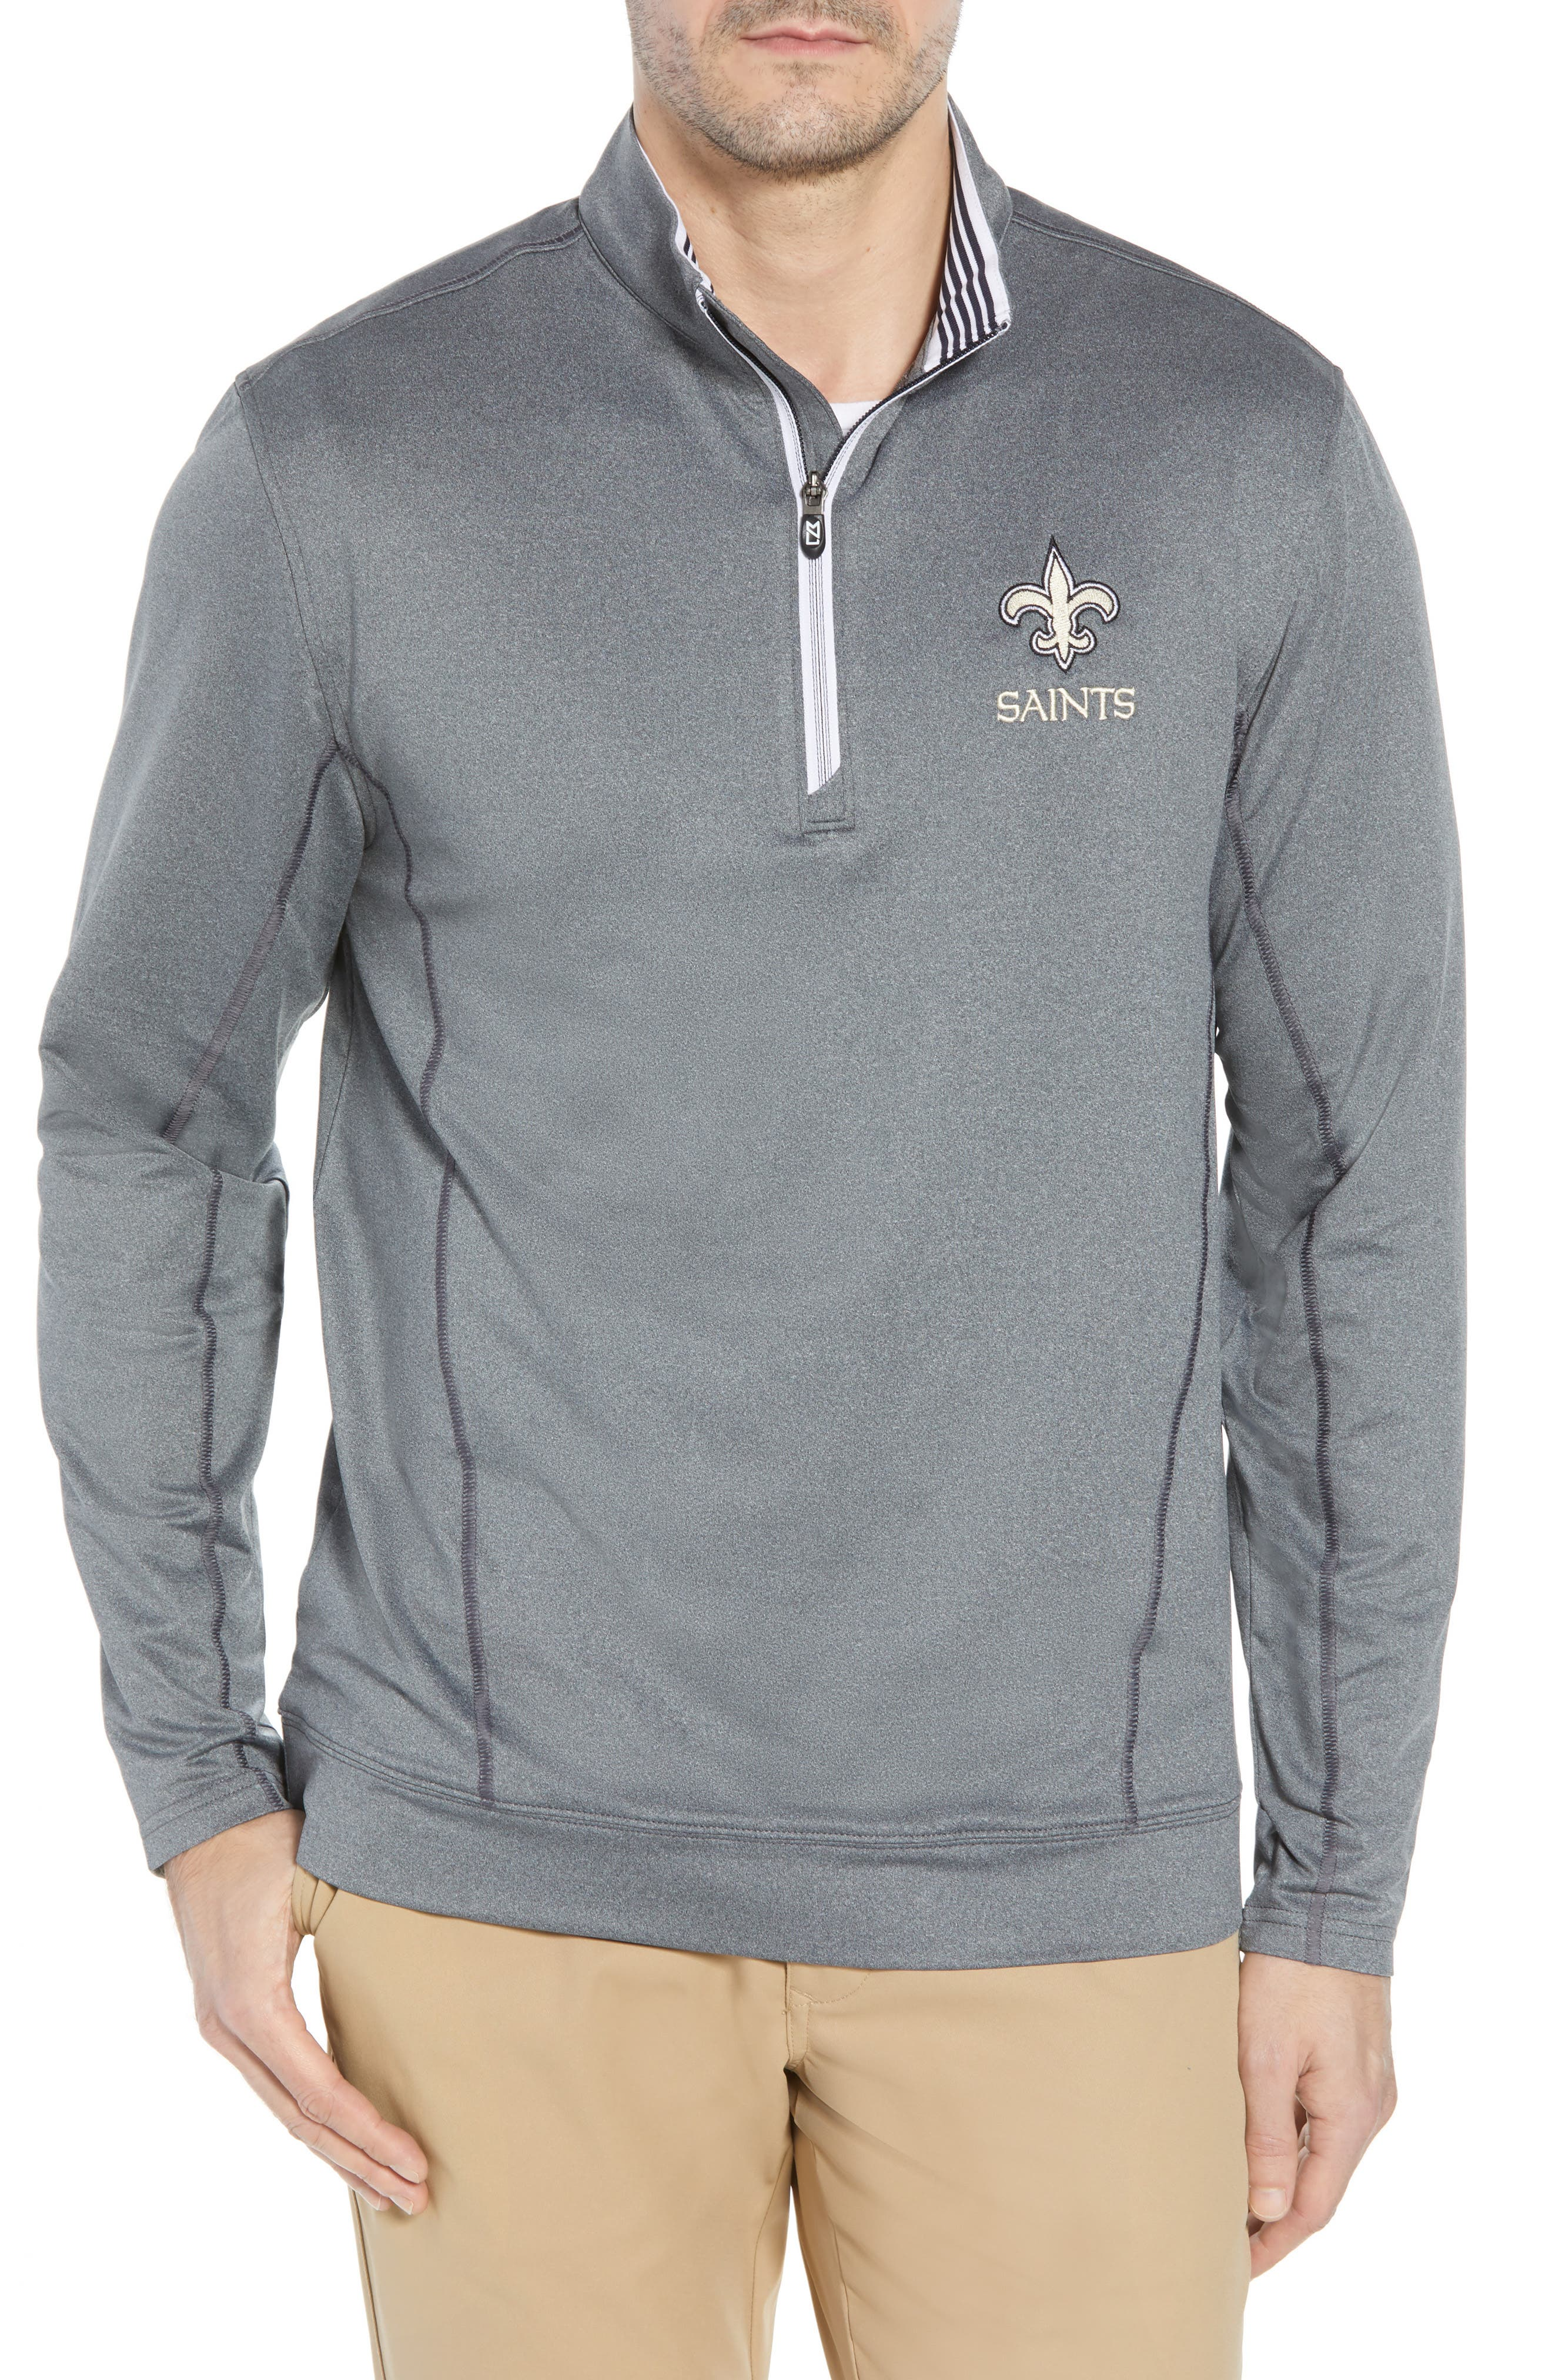 Endurance New Orleans Saints Regular Fit Pullover,                         Main,                         color, CHARCOAL HEATHER